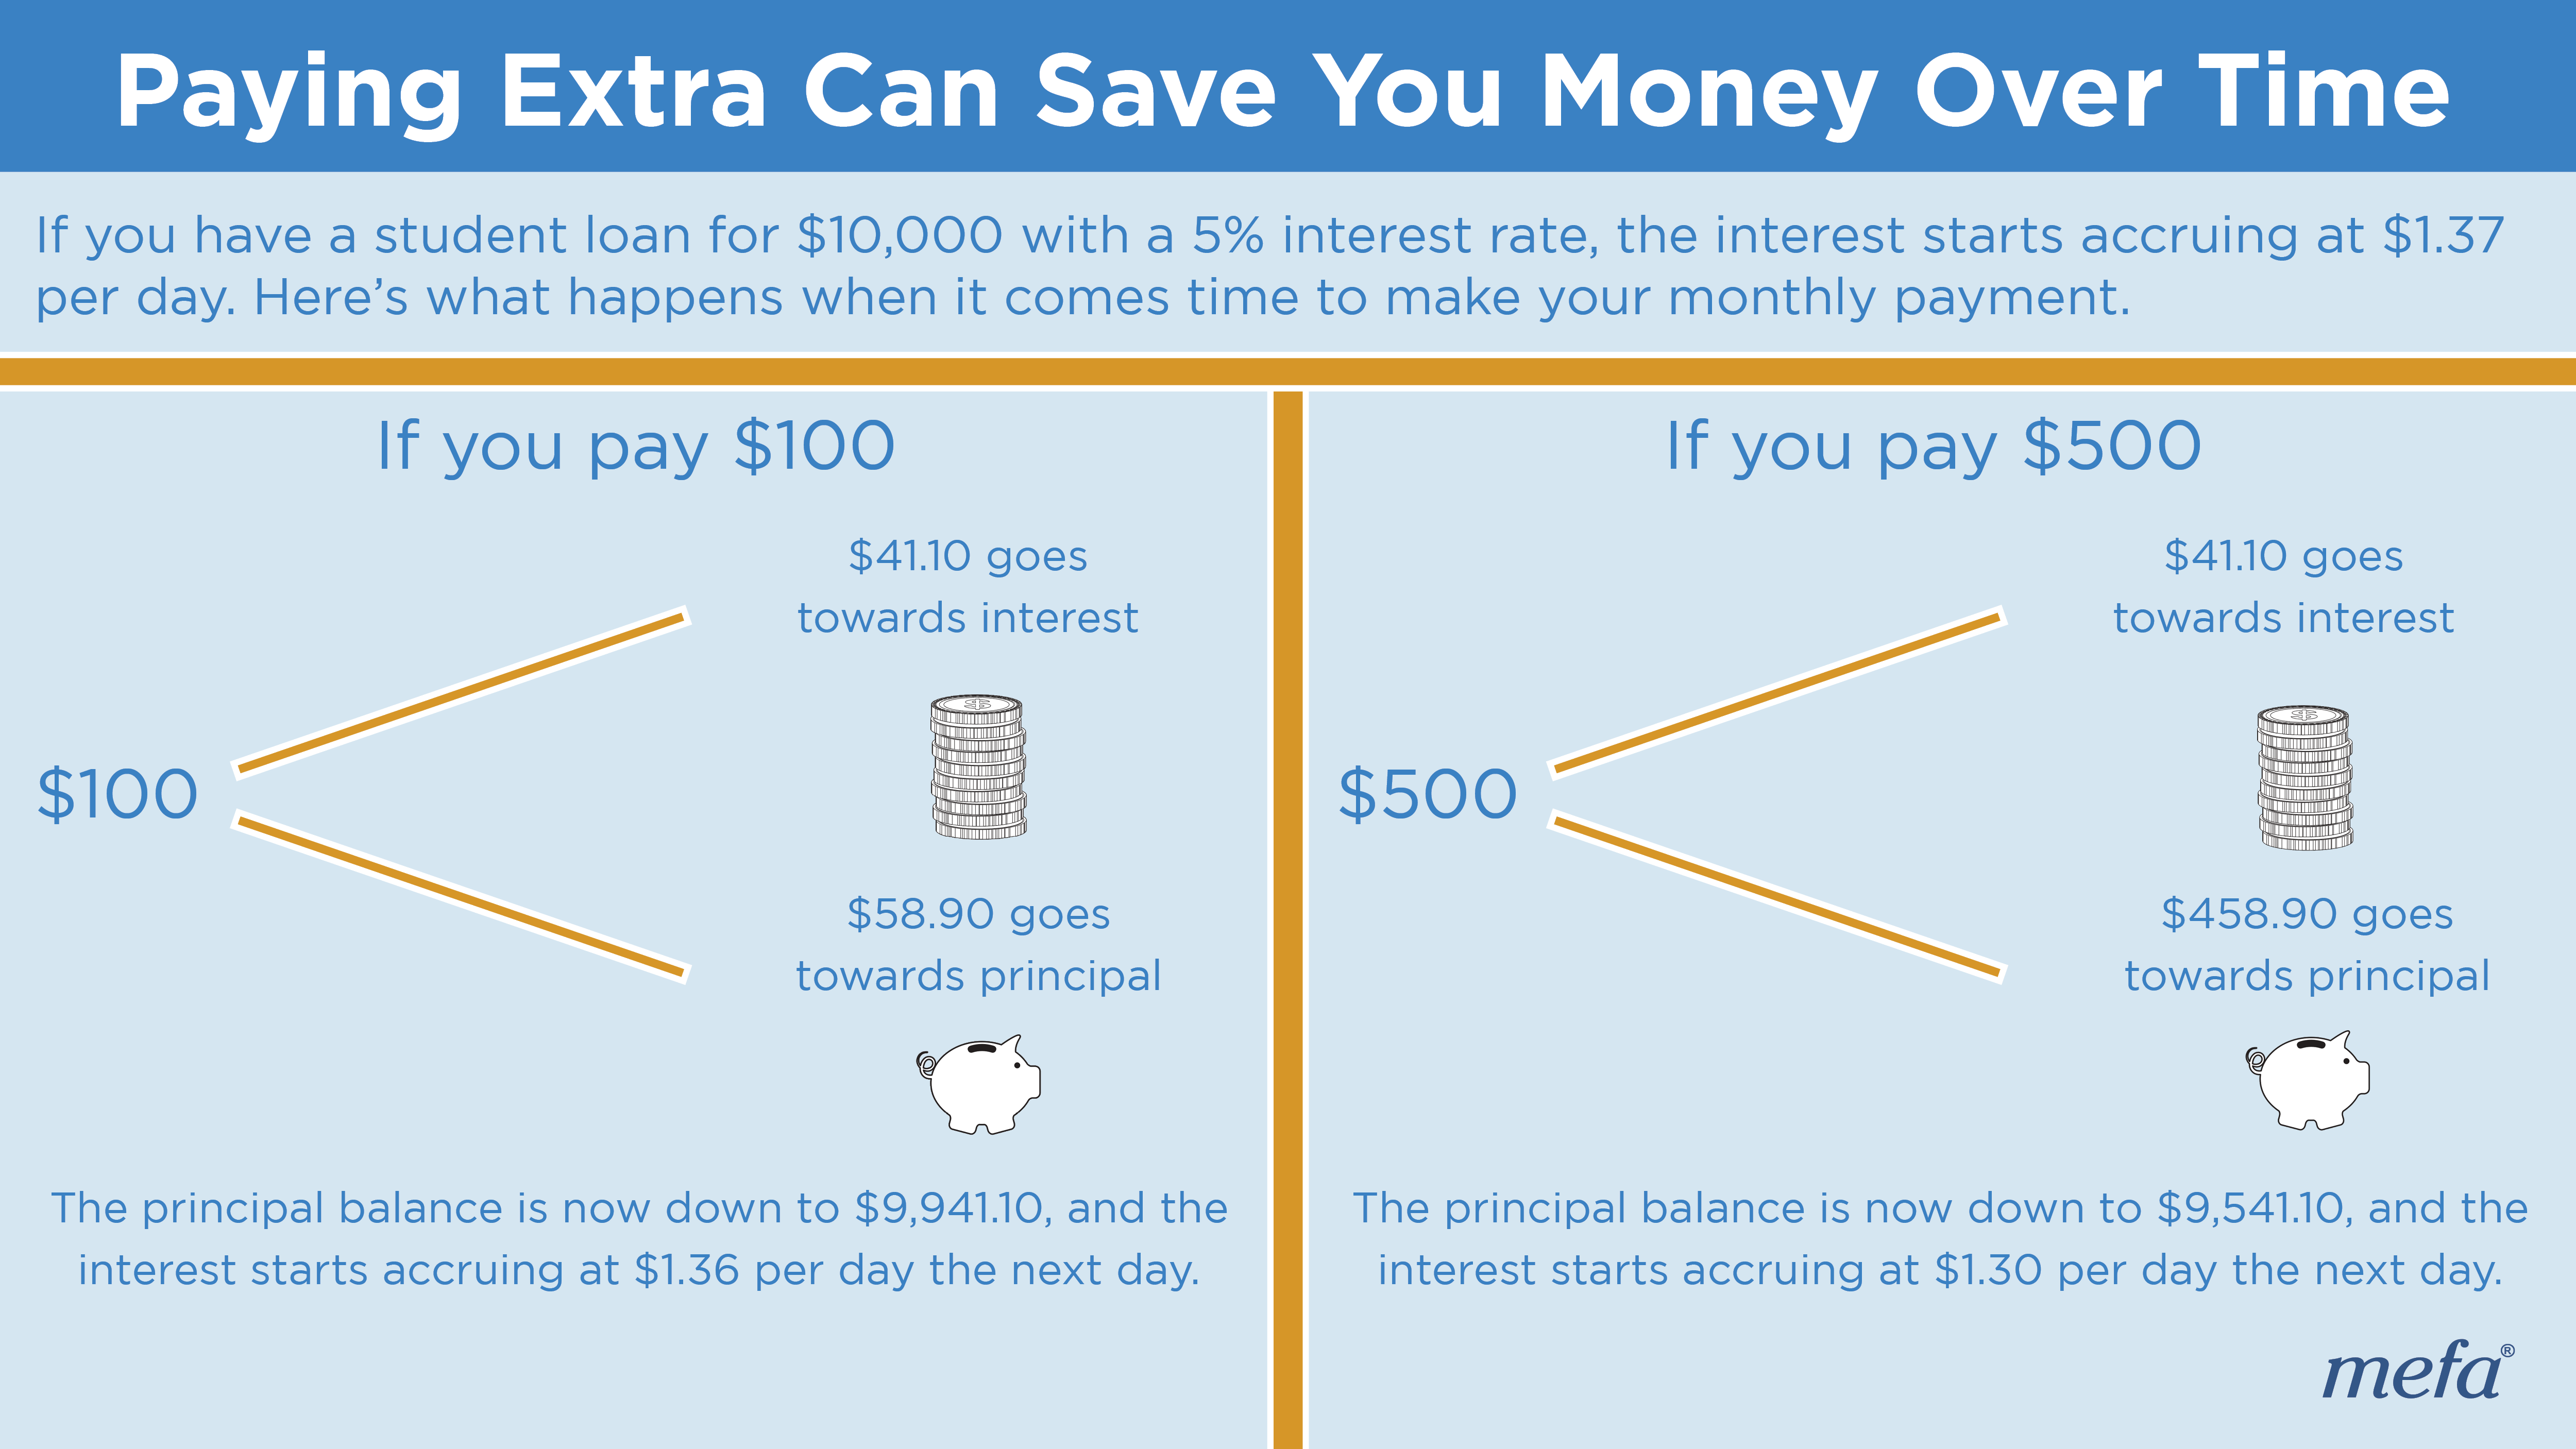 Paying Extra Can Save You Money Over Time